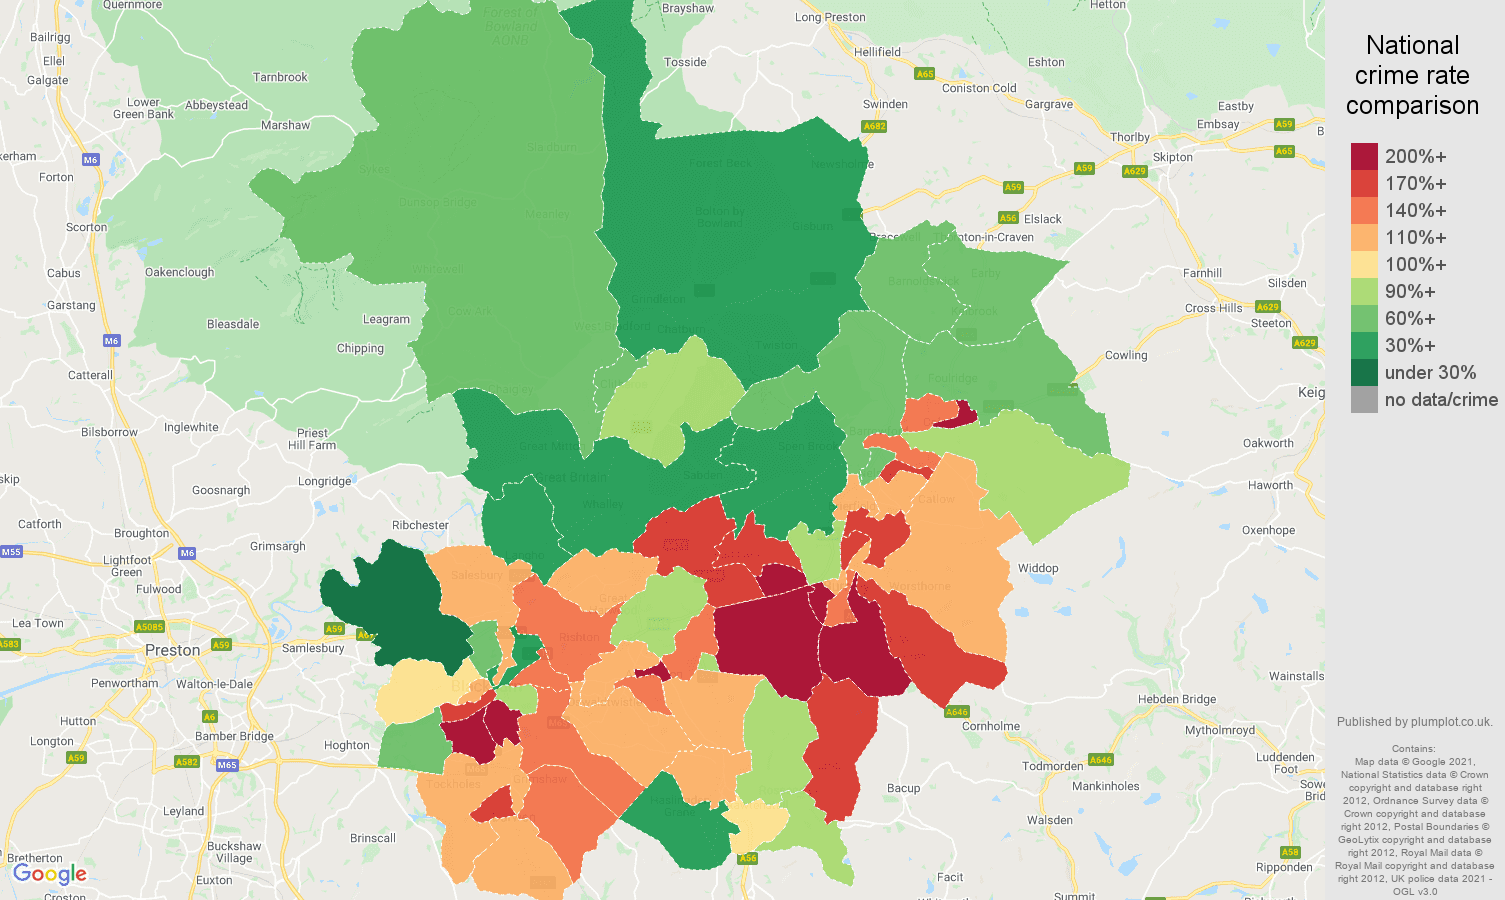 Blackburn criminal damage and arson crime rate comparison map